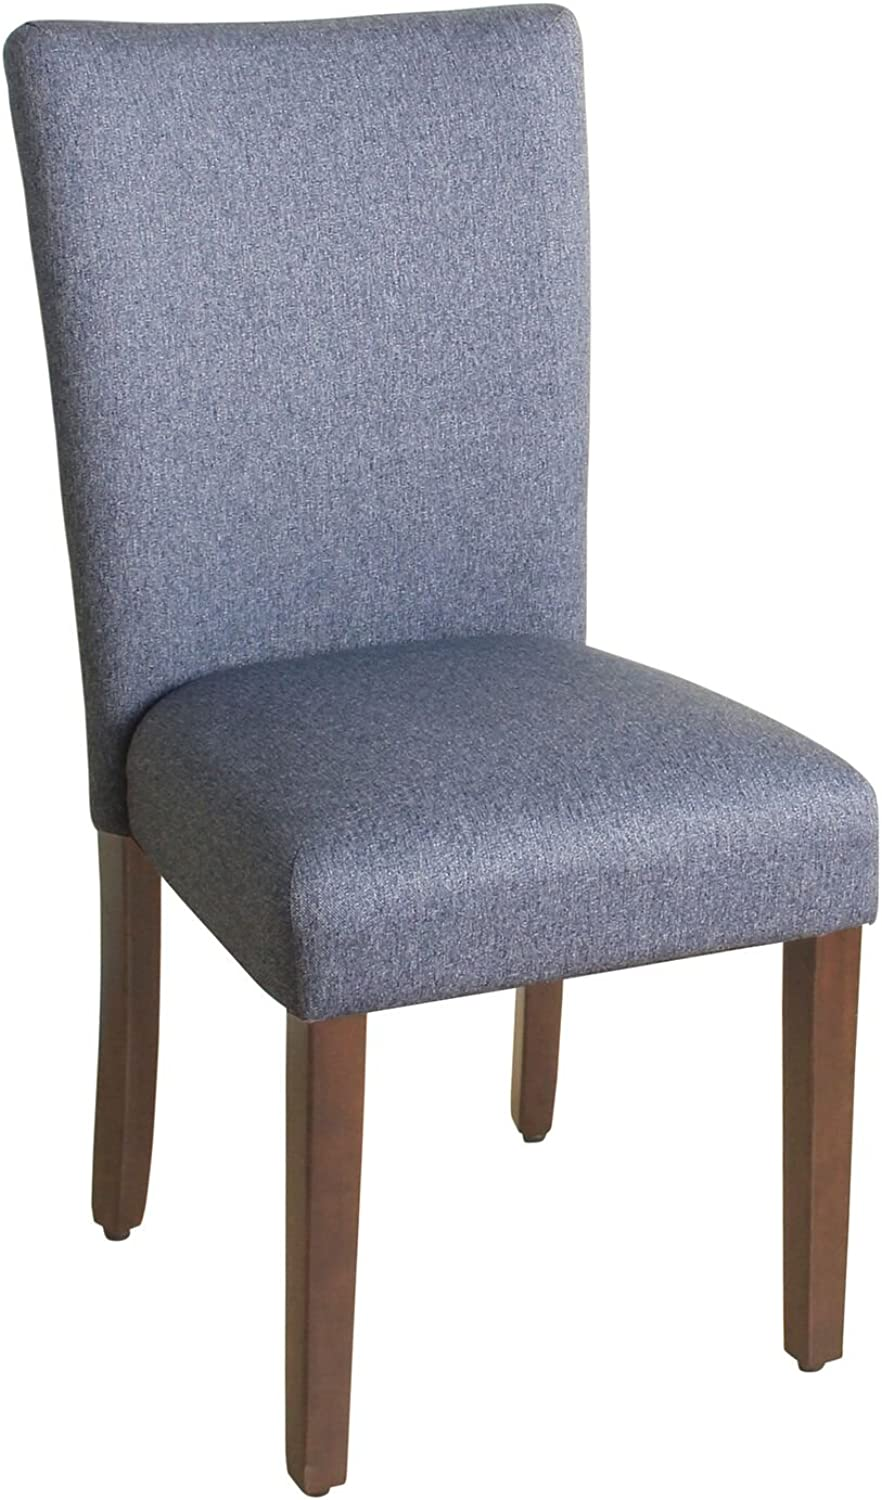 Kinfine Parsons Classic Dining Chair, bluee (Single Pack)